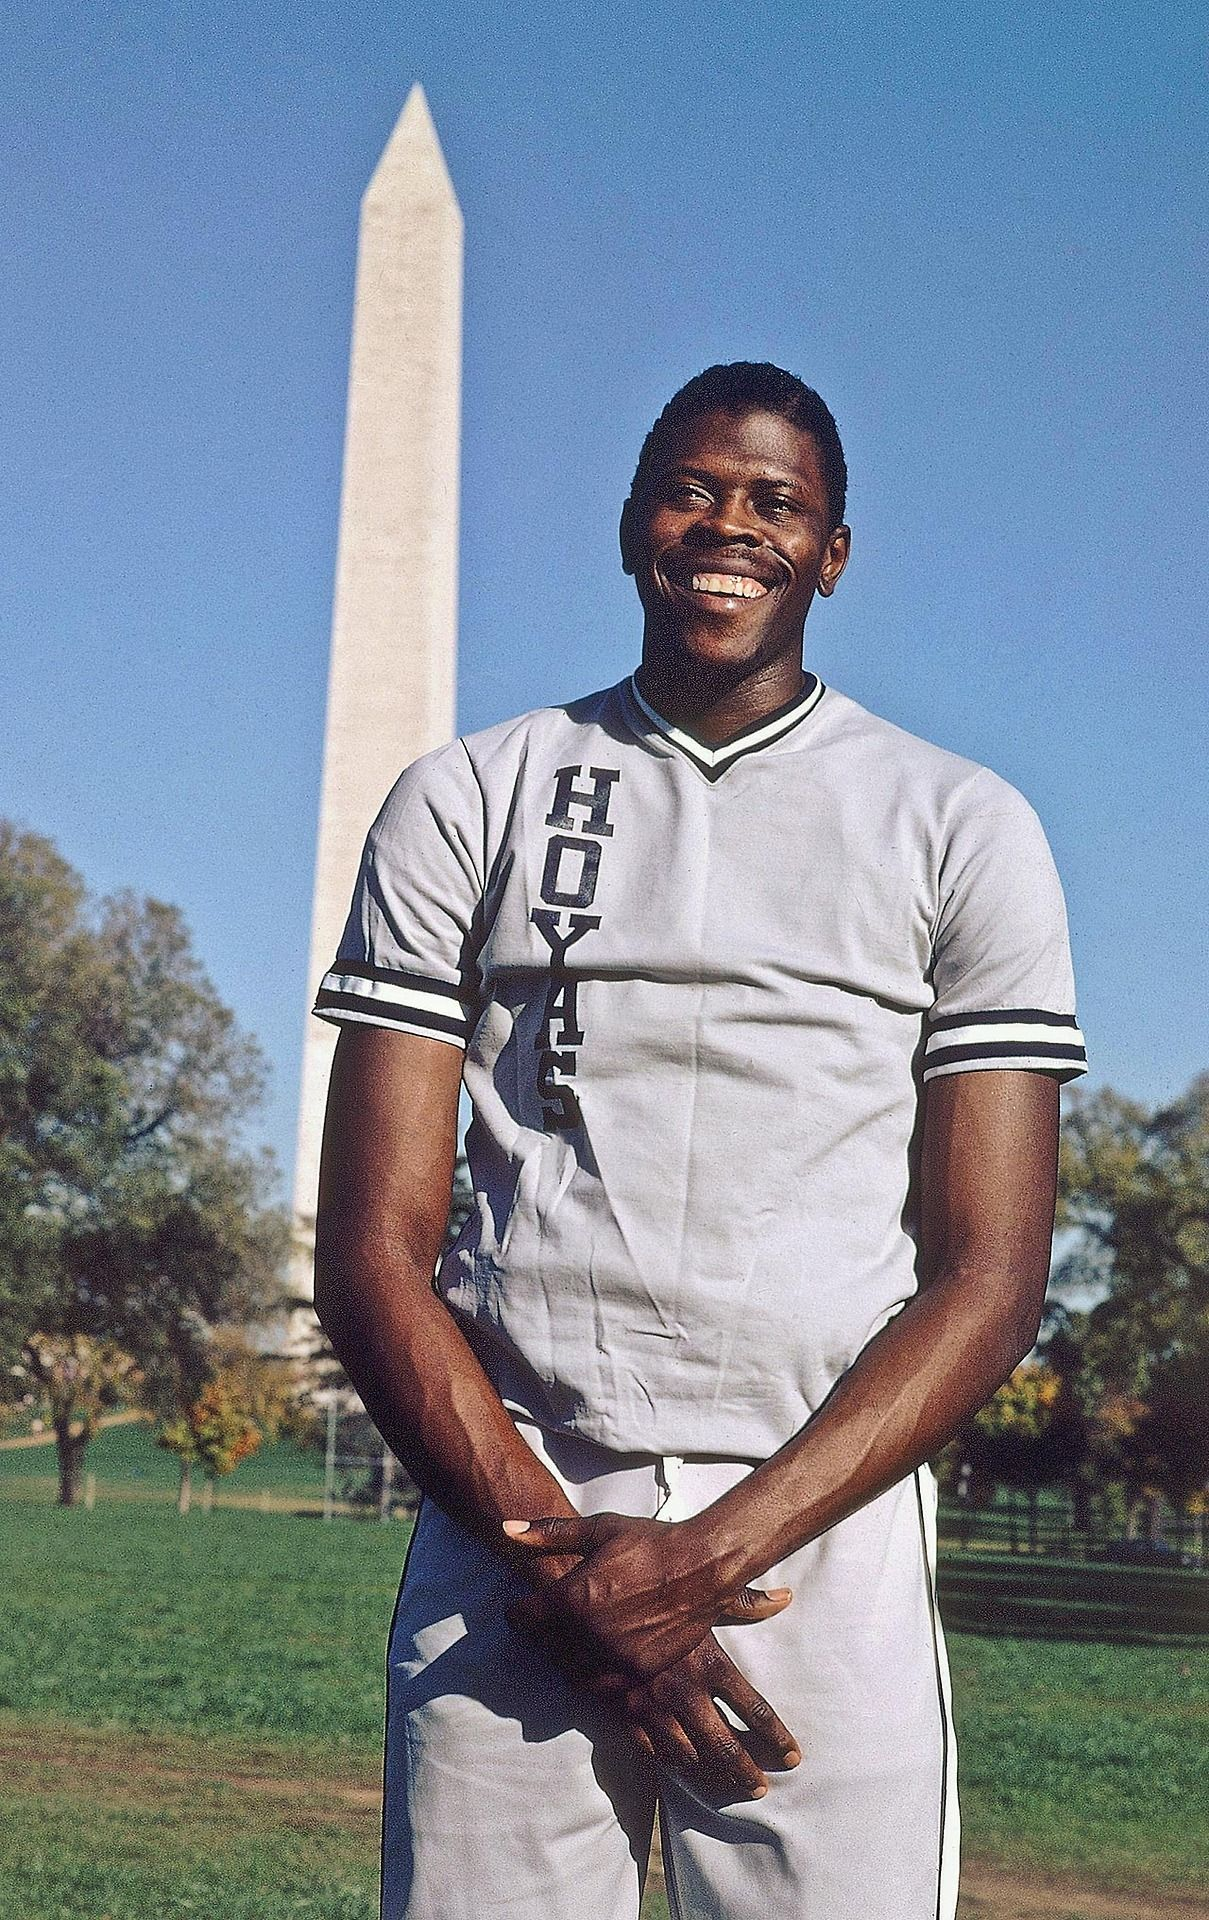 Aug 5 1962 Patrick Ewing was born Basketball star from